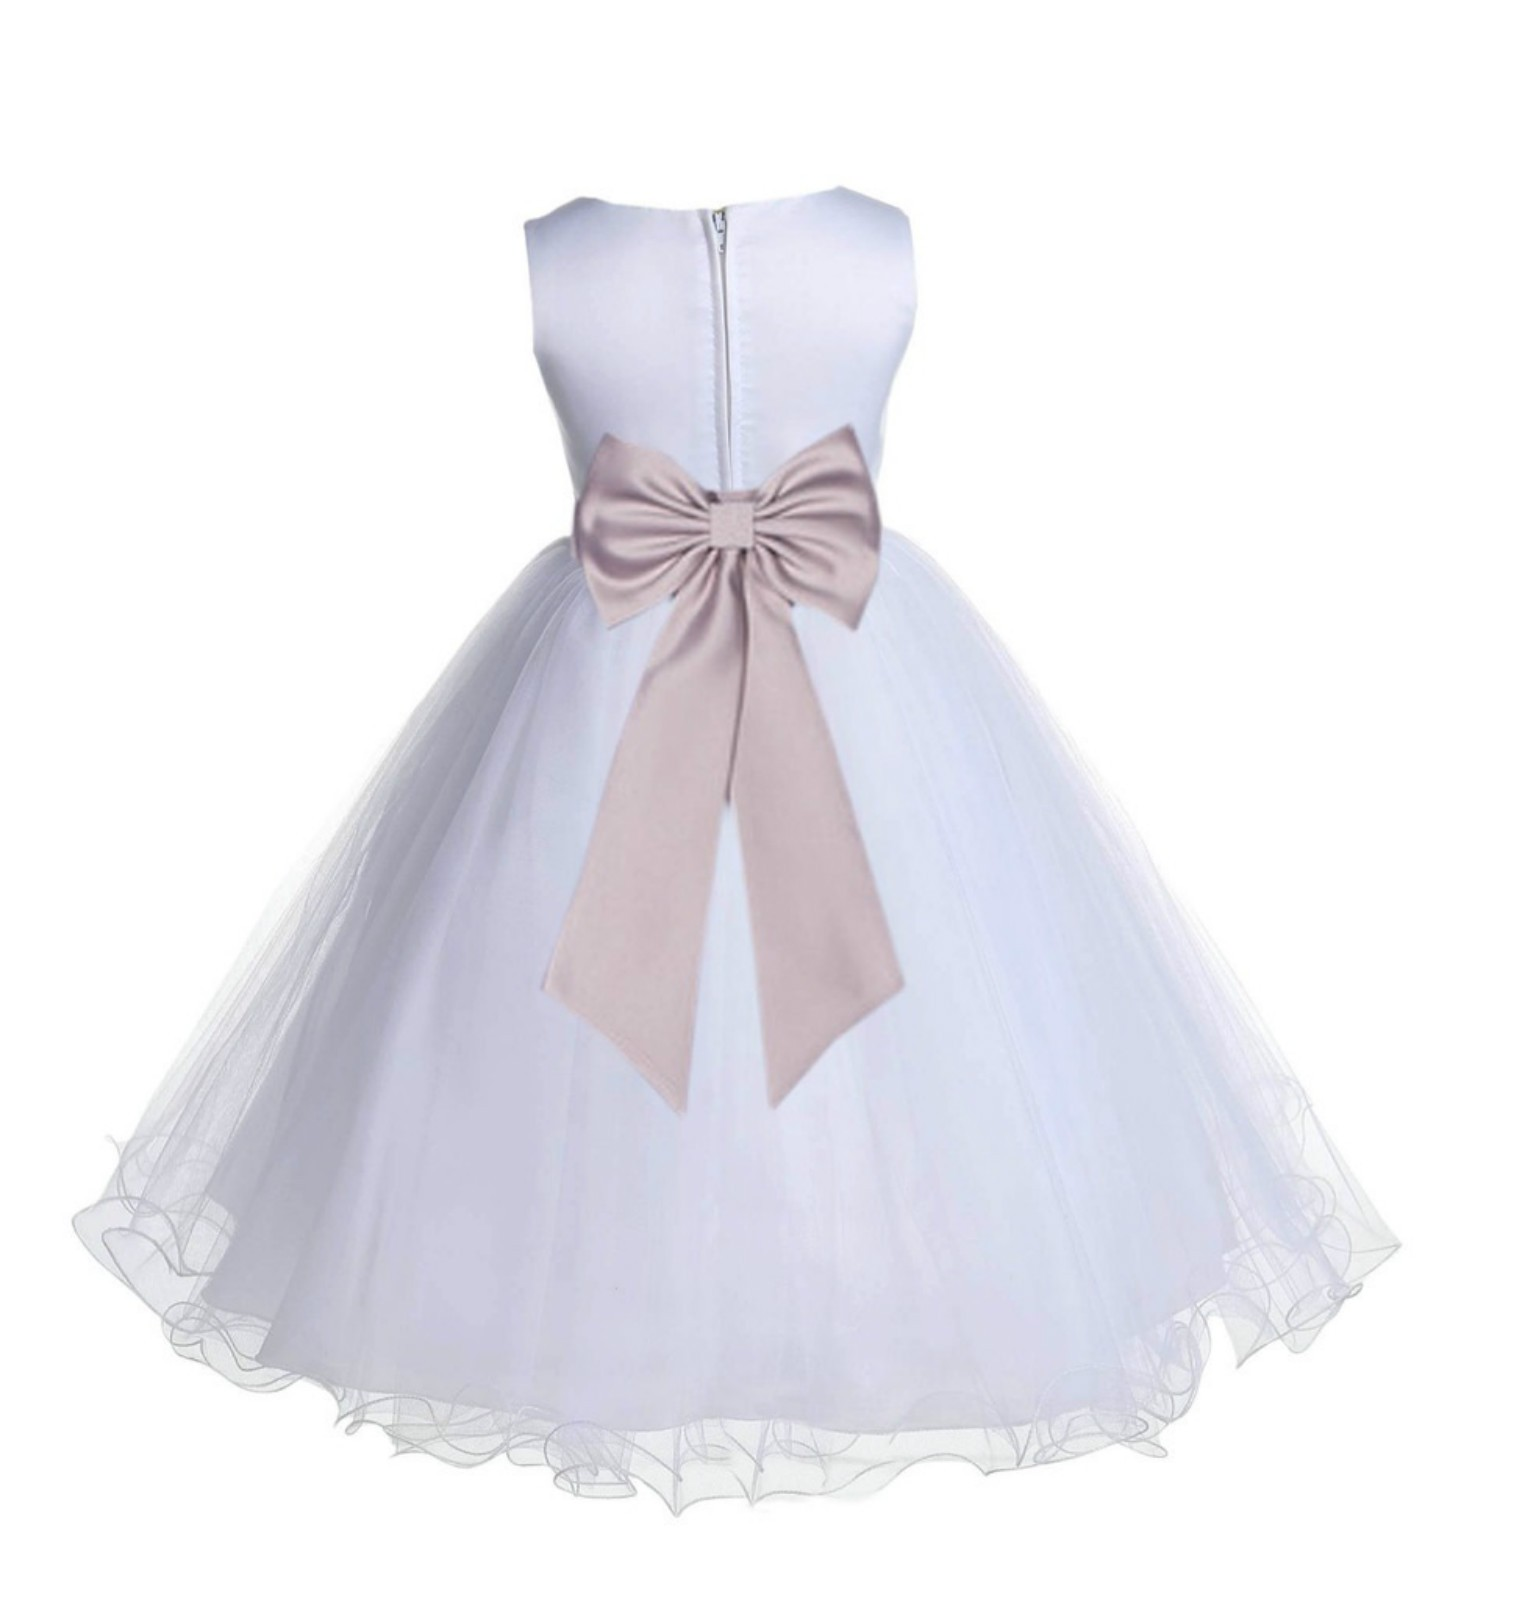 White/Biscuit Tulle Rattail Edge Flower Girl Dress Wedding Bridesmaid 829T